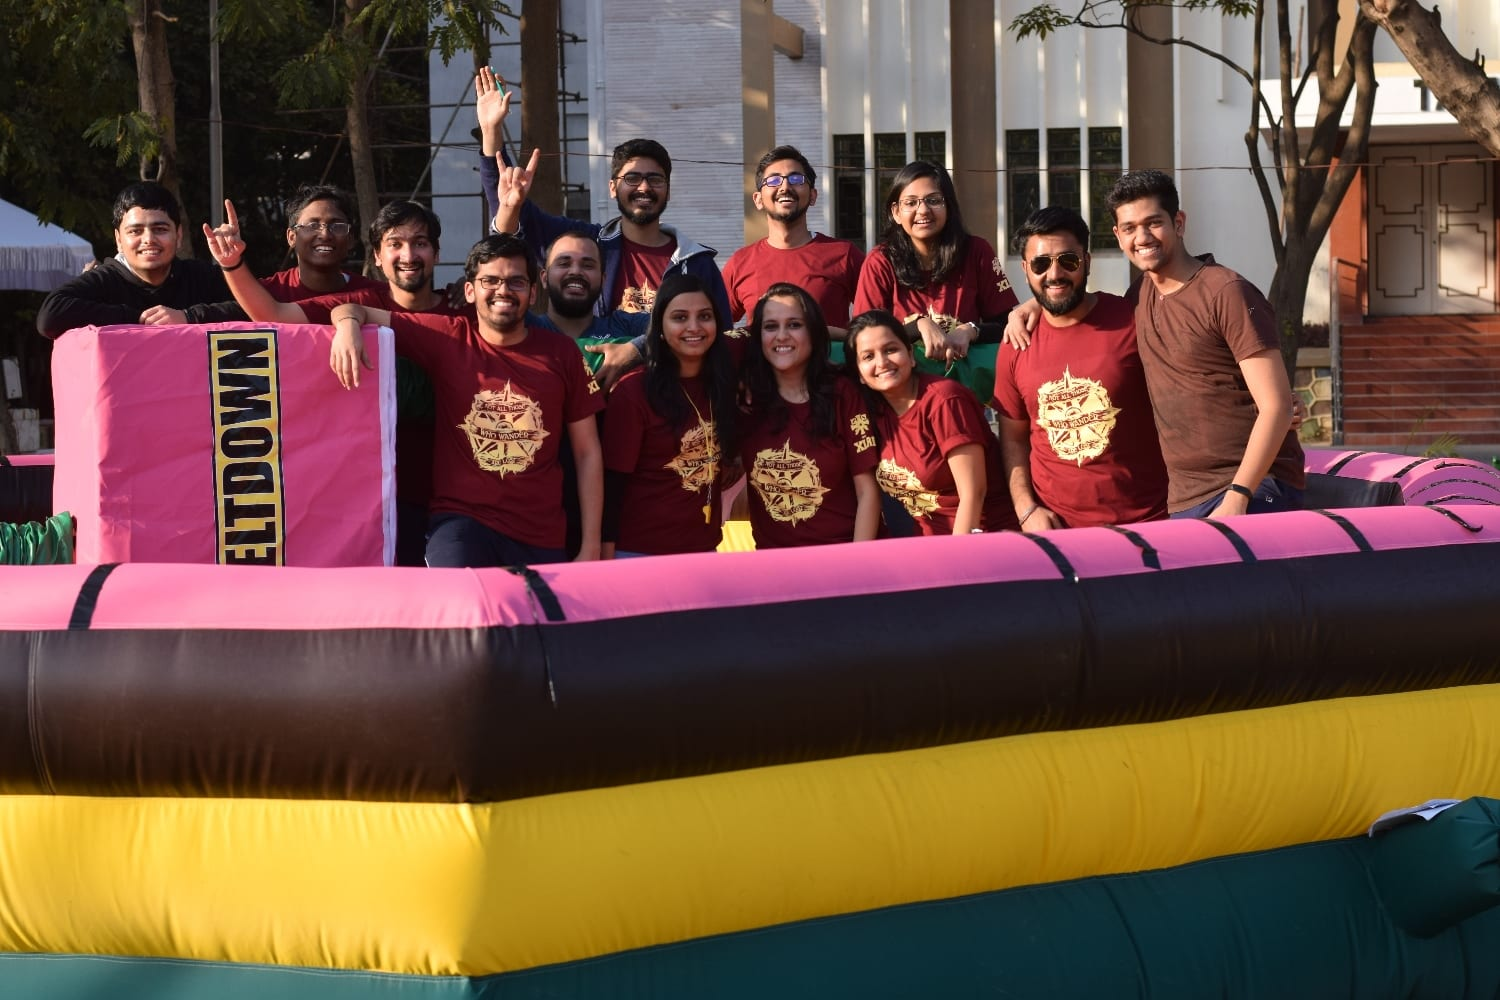 Maelstrom 2018: XLANC brings adventure and fun to XLRI campus